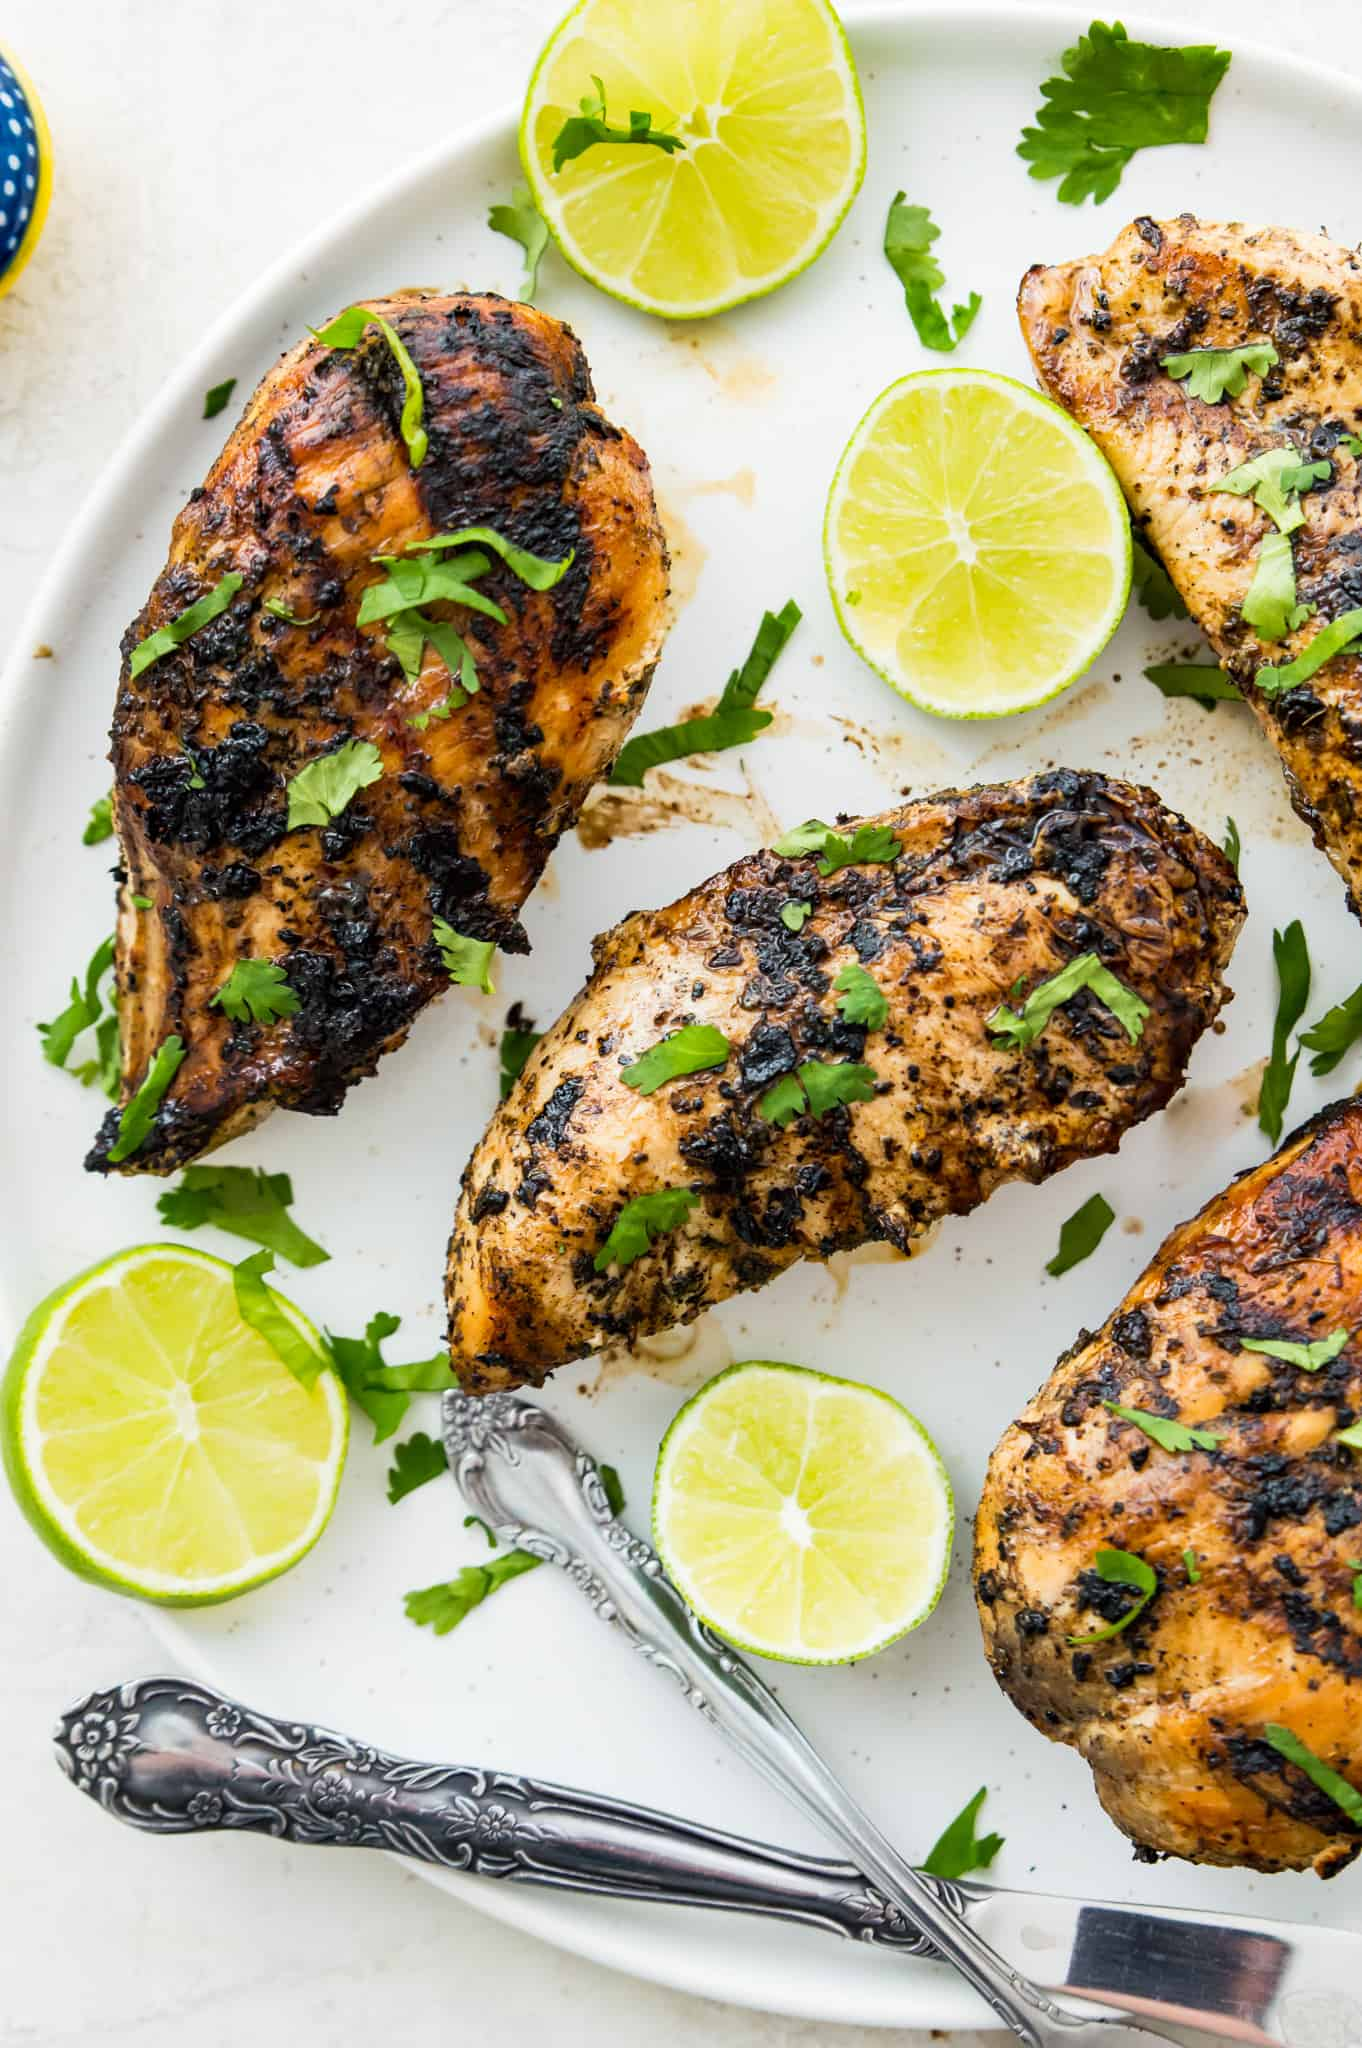 Grilled chicken breasts on a white plate with garnished with limes and cilantro